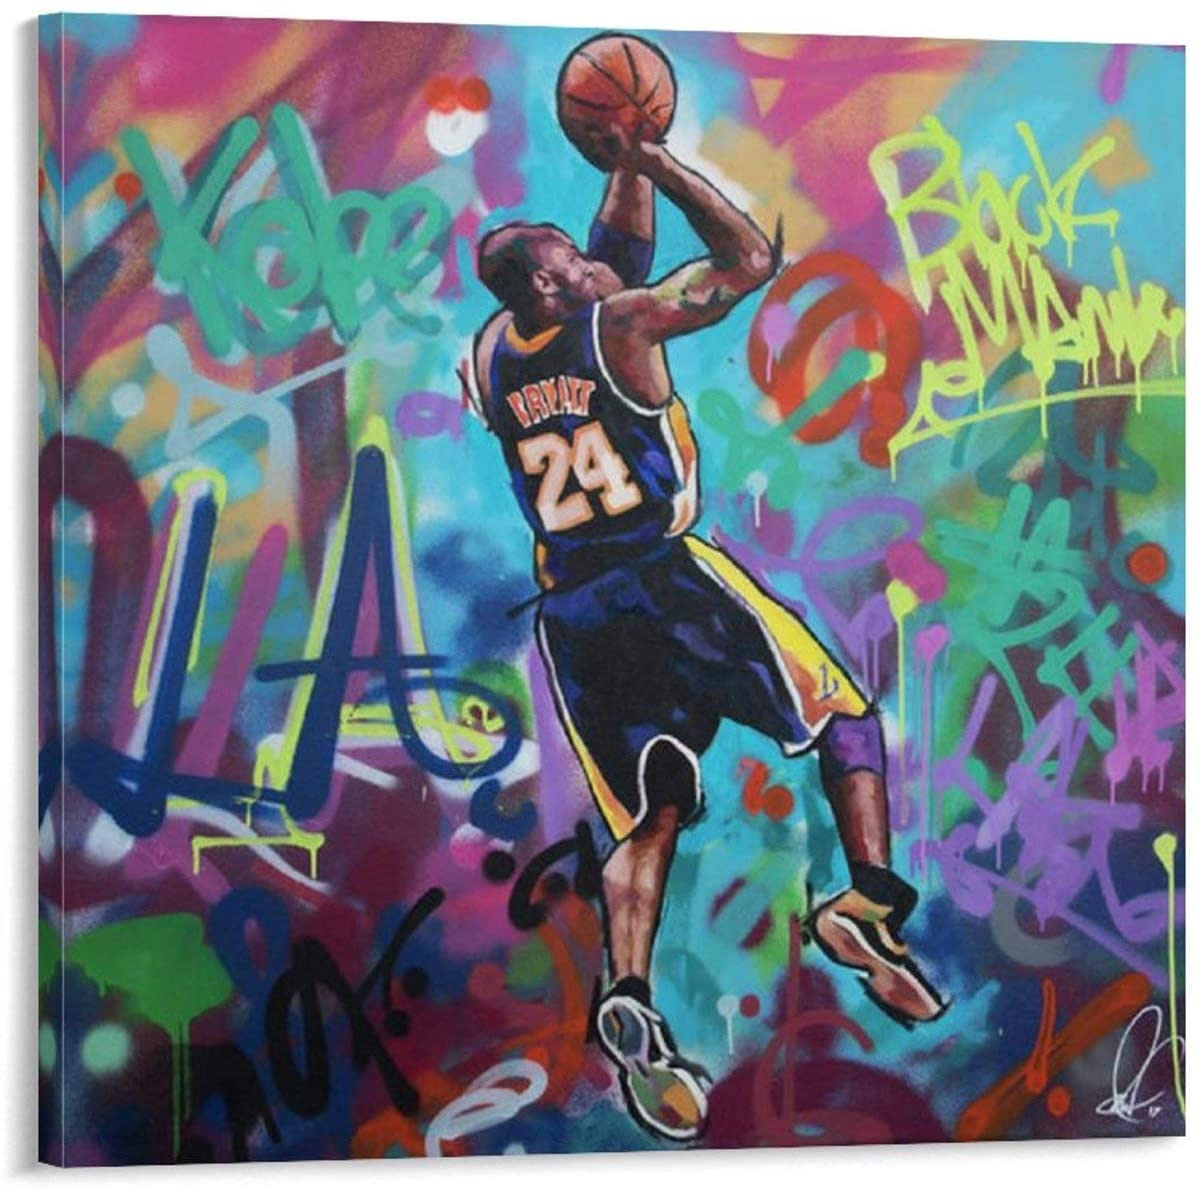 caomei Kobe Bryant Poster Decorative Painting Canvas Wall Art Living Room Posters Bedroom Painting 24x24inch(60x60cm)